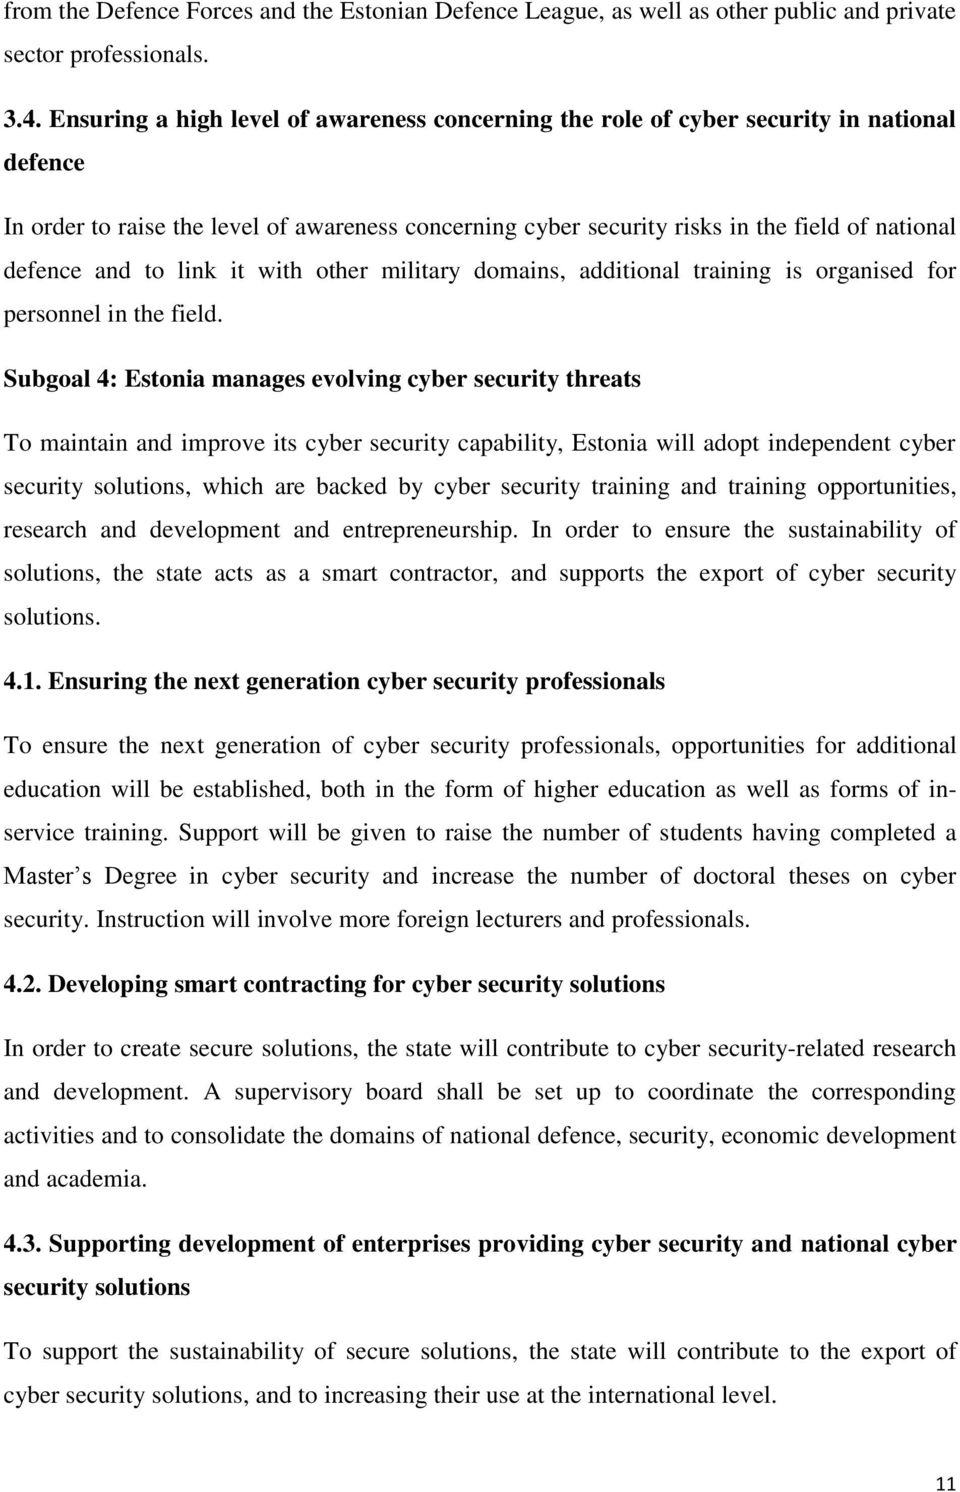 Cyber Security Strategy - PDF